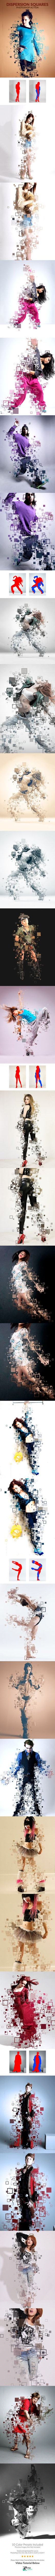 Dispersion Squares Photoshop Action - Photo Effects Actions